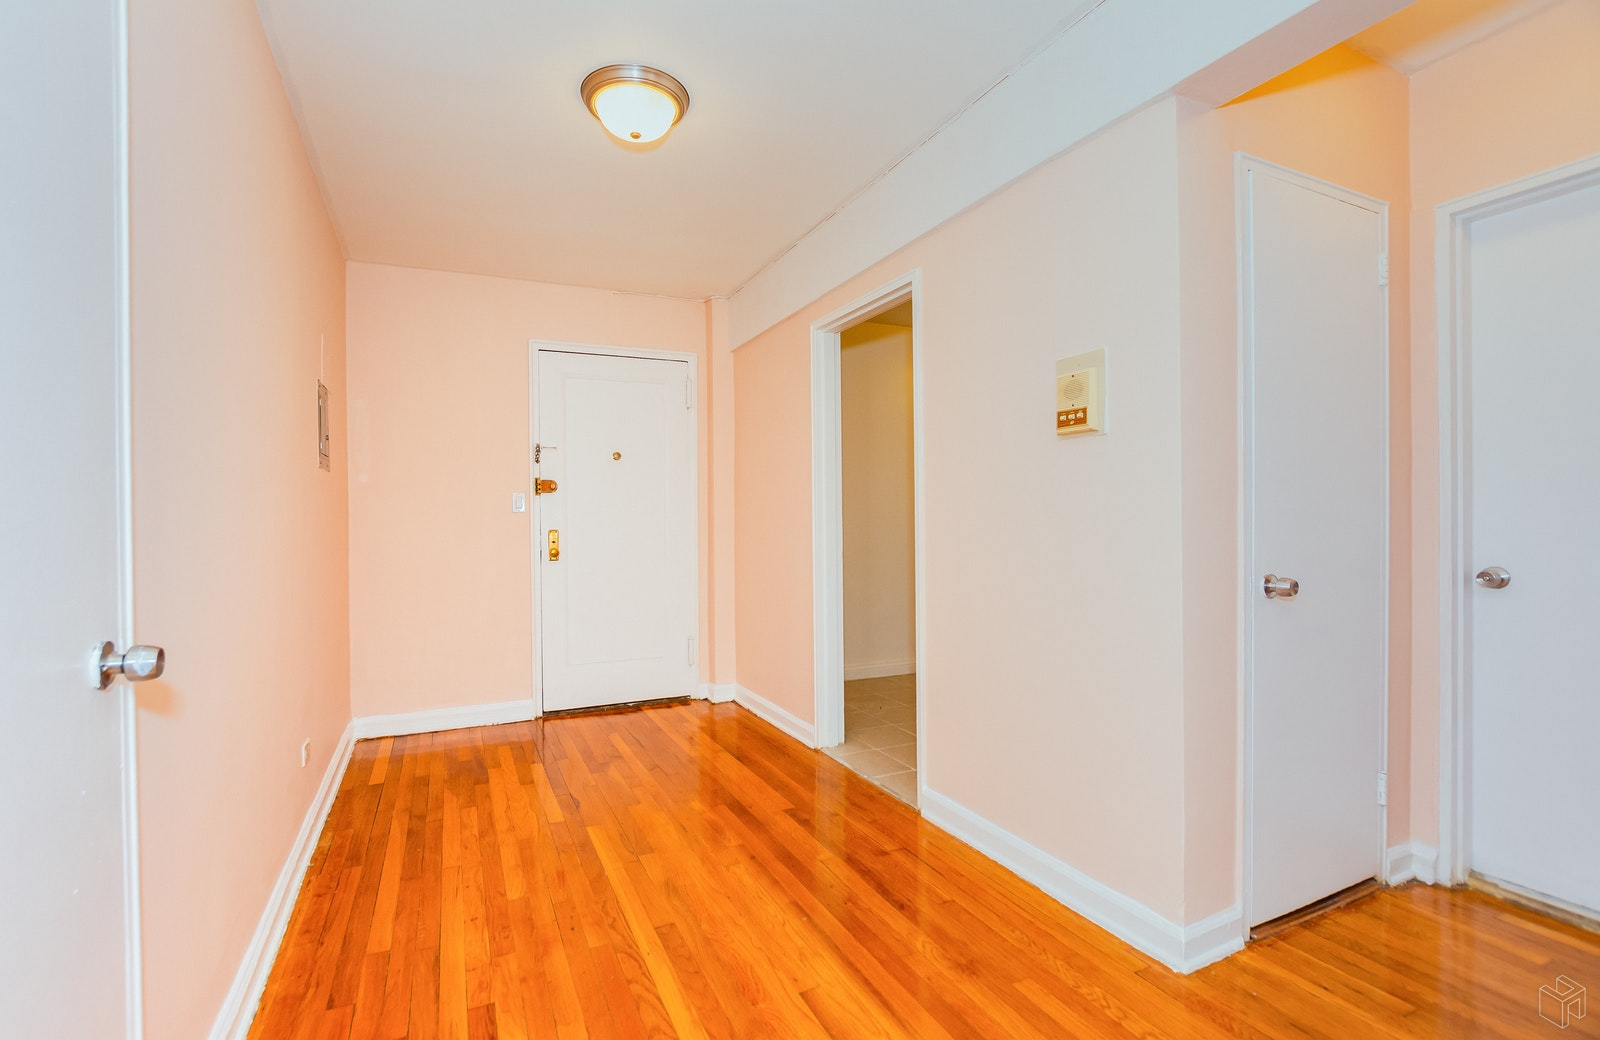 2102 Holland Ave 3a, Pelham Parkway, New York, 10462, $135,000, Sold Property, Halstead Real Estate, Photo 3